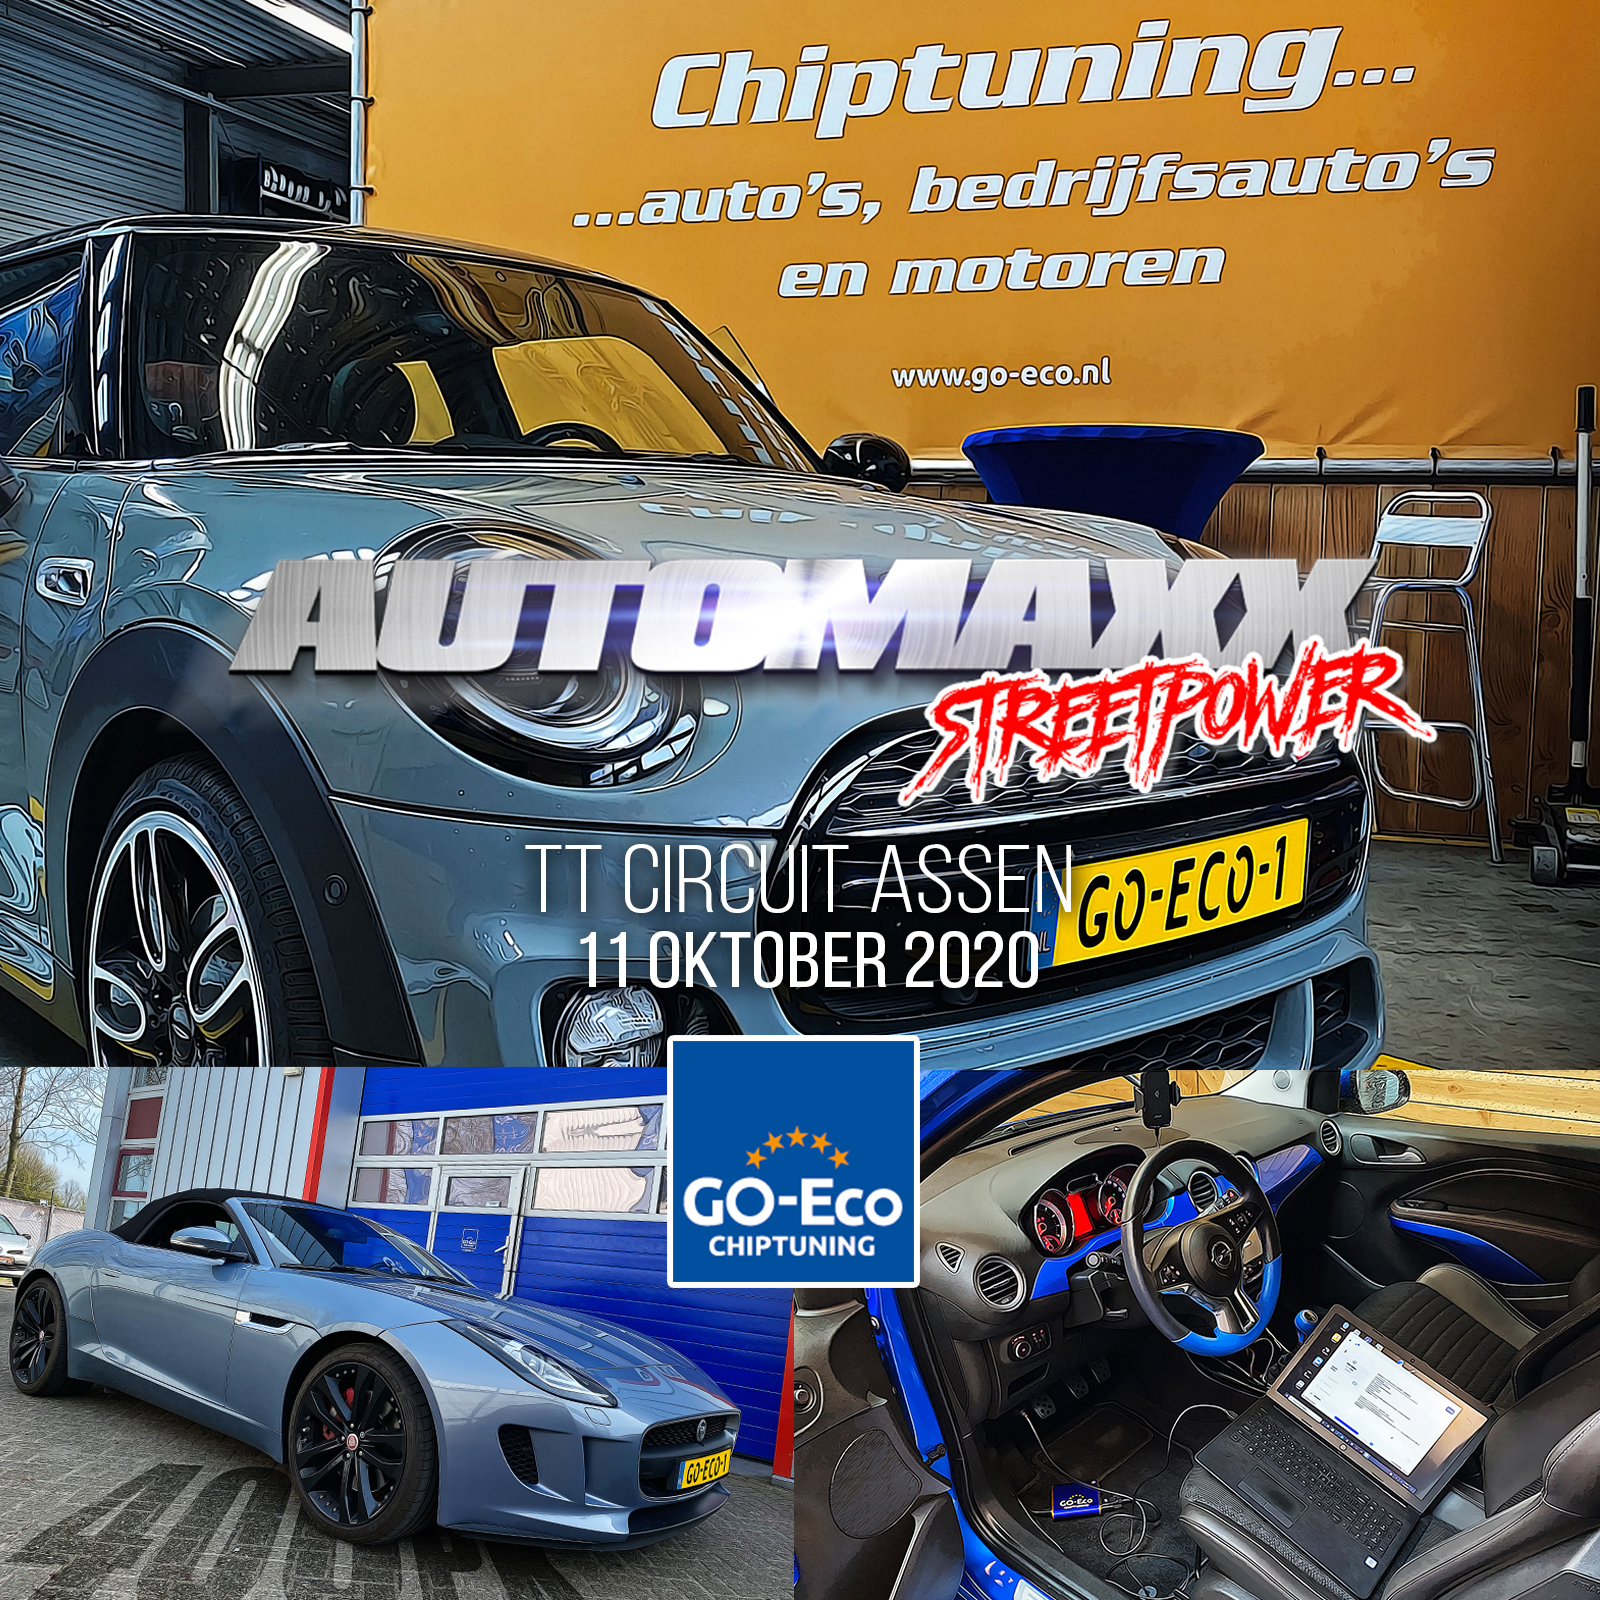 AUTOMAXX STREETPOWER IS POWERED BY: GO-ECO CHIPTUNING